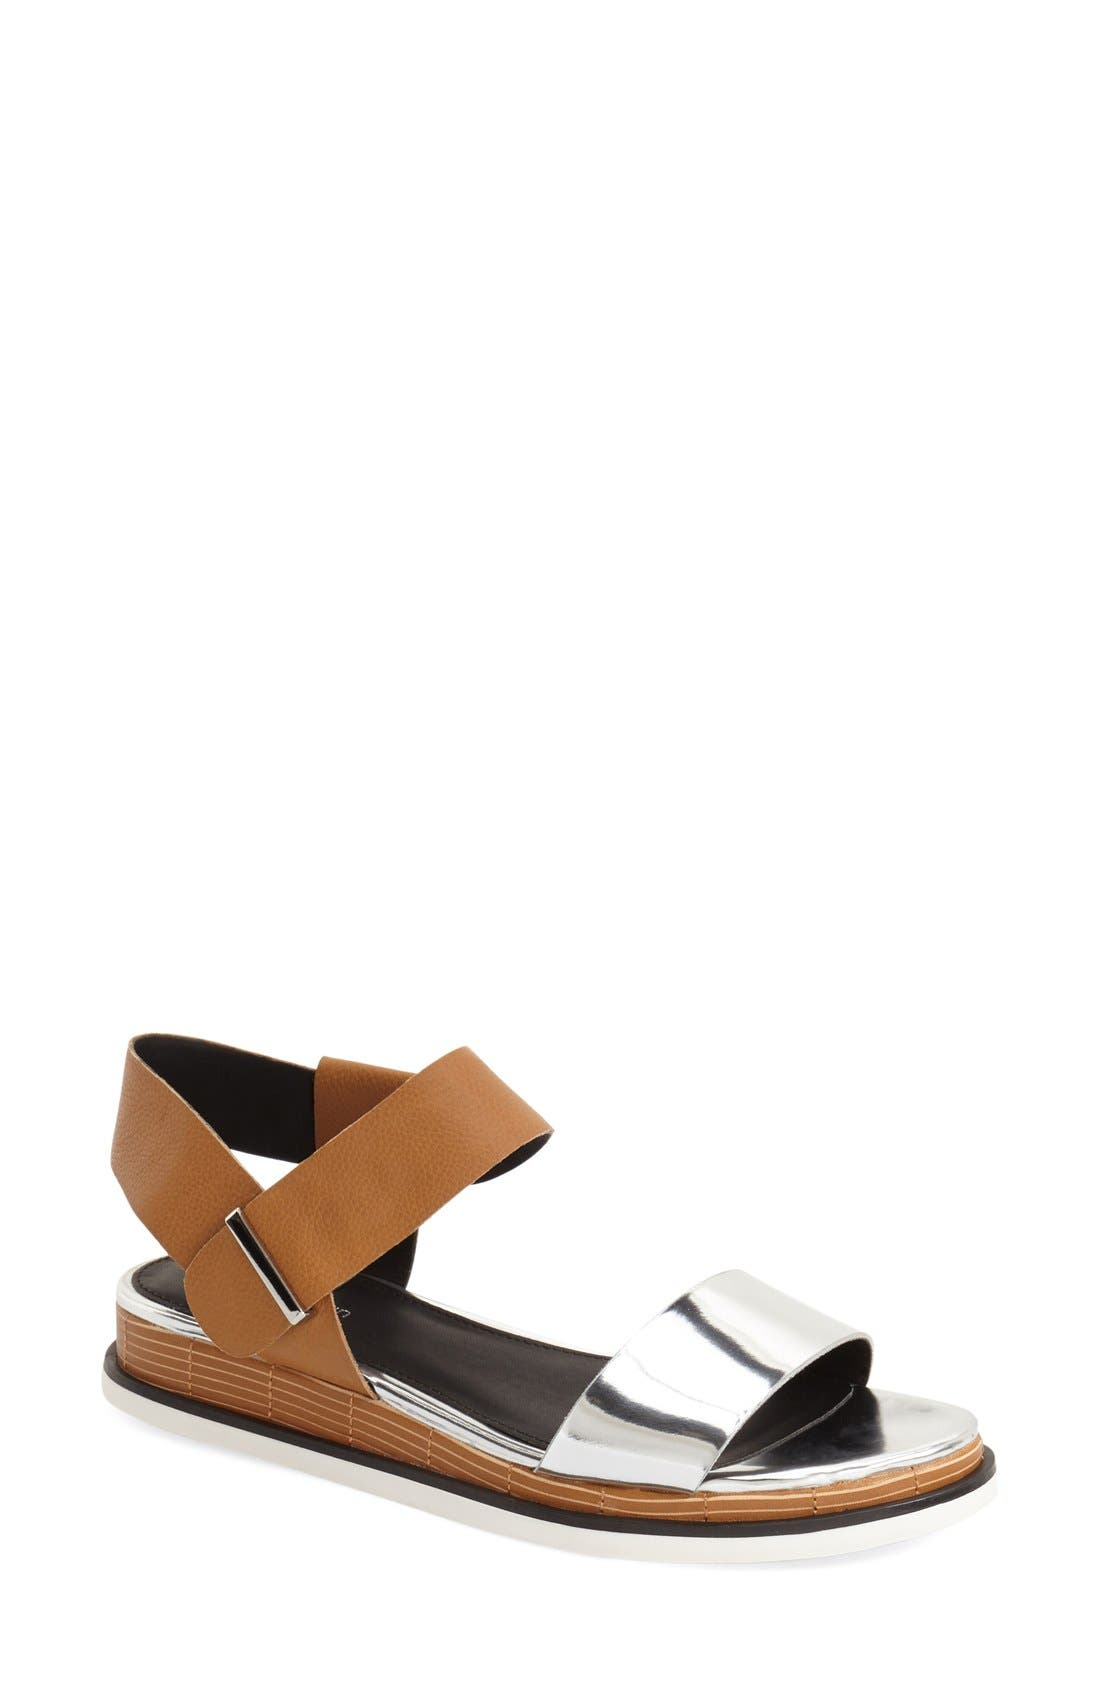 Alternate Image 1 Selected - Calvin Klein 'Cadan' Demi Wedge Sandal (Women)